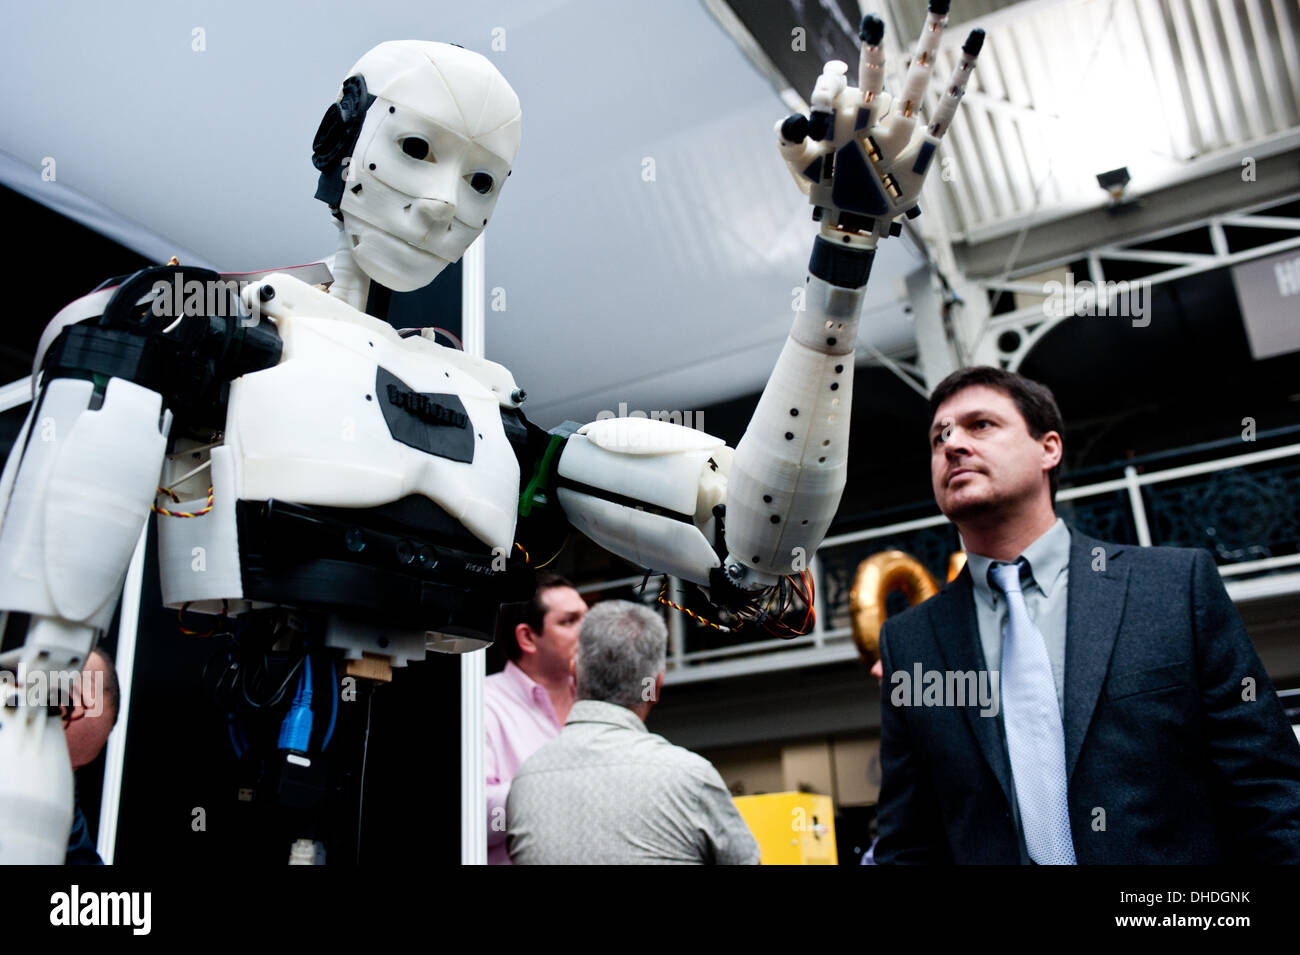 London, UK. 7th November 2013.  a visitor looks up at the InMoov Robot, an open-source humanoid robot comprised almost entirely of 3D printable parts designed by French sculptor and model-maker Gael Langevin, on show at the 3D Printshow at the Business Design Centre in London. Credit:  Piero Cruciatti/Alamy Live News - Stock Image